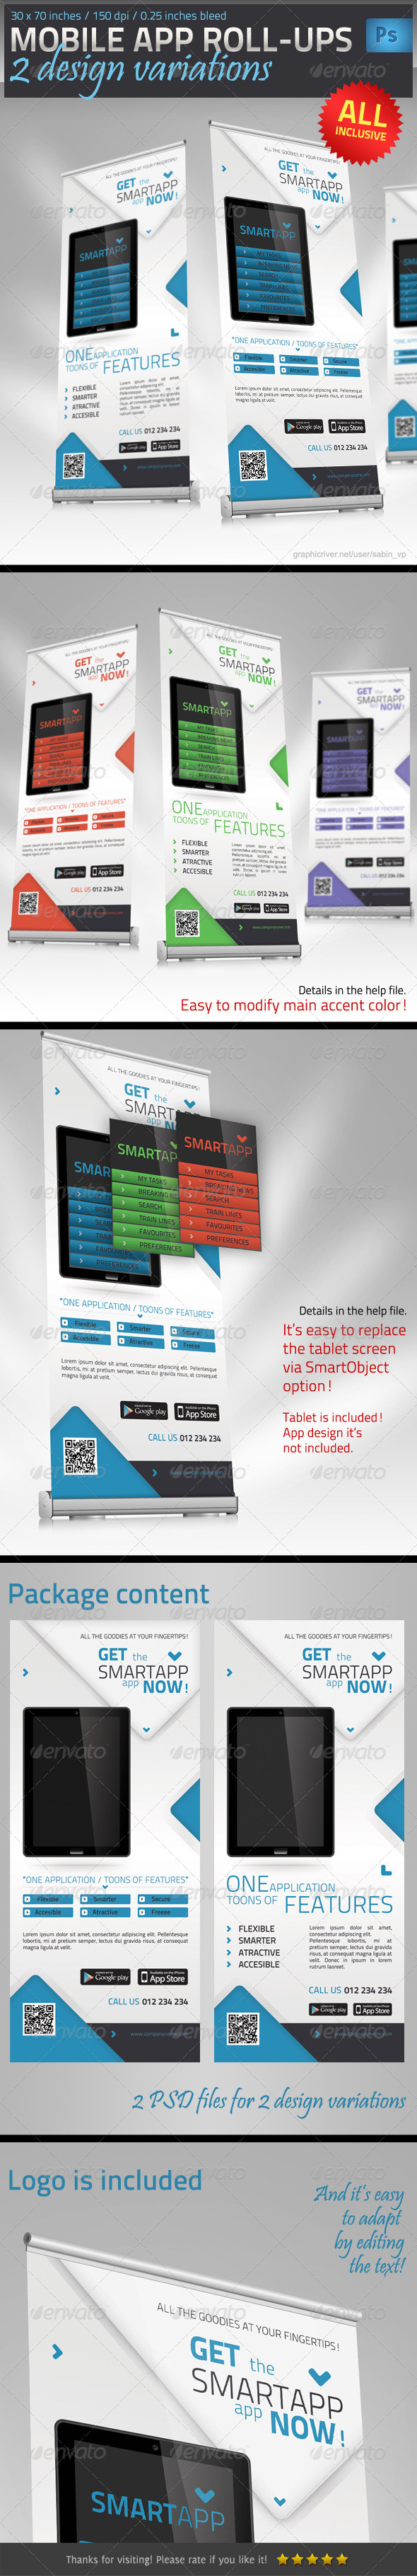 Mobile App Promotion Roll-Up Template - Signage Print Templates